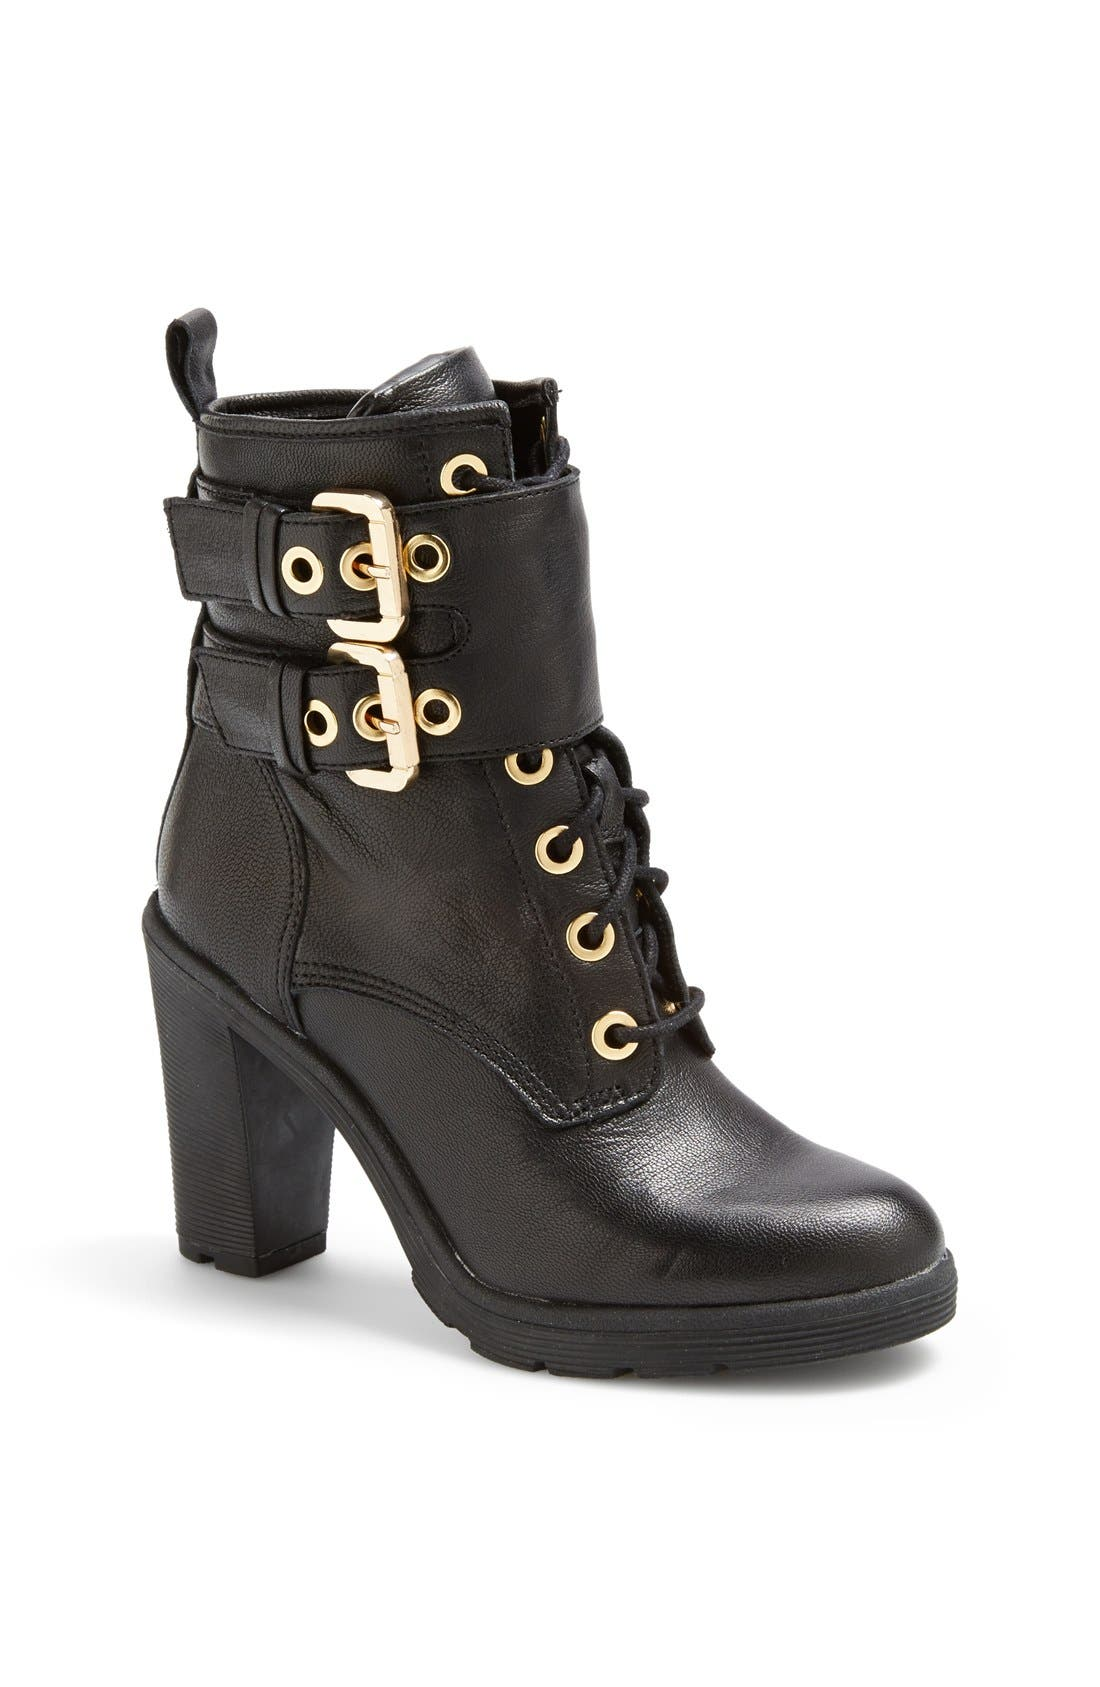 Alternate Image 1 Selected - GUESS 'Finlay' Belted Leather Bootie